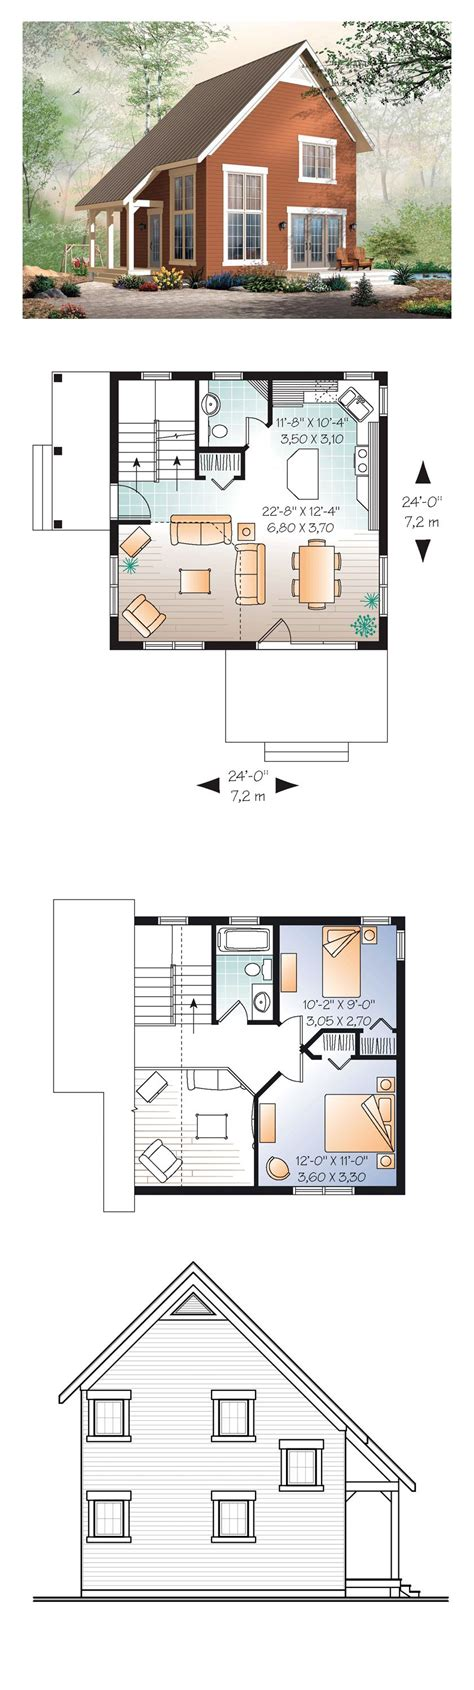 narrow lot house plans with basement narrow lot house plan 76149 total living area 1050 sq ft 2 bedrooms and 1 5 bathrooms